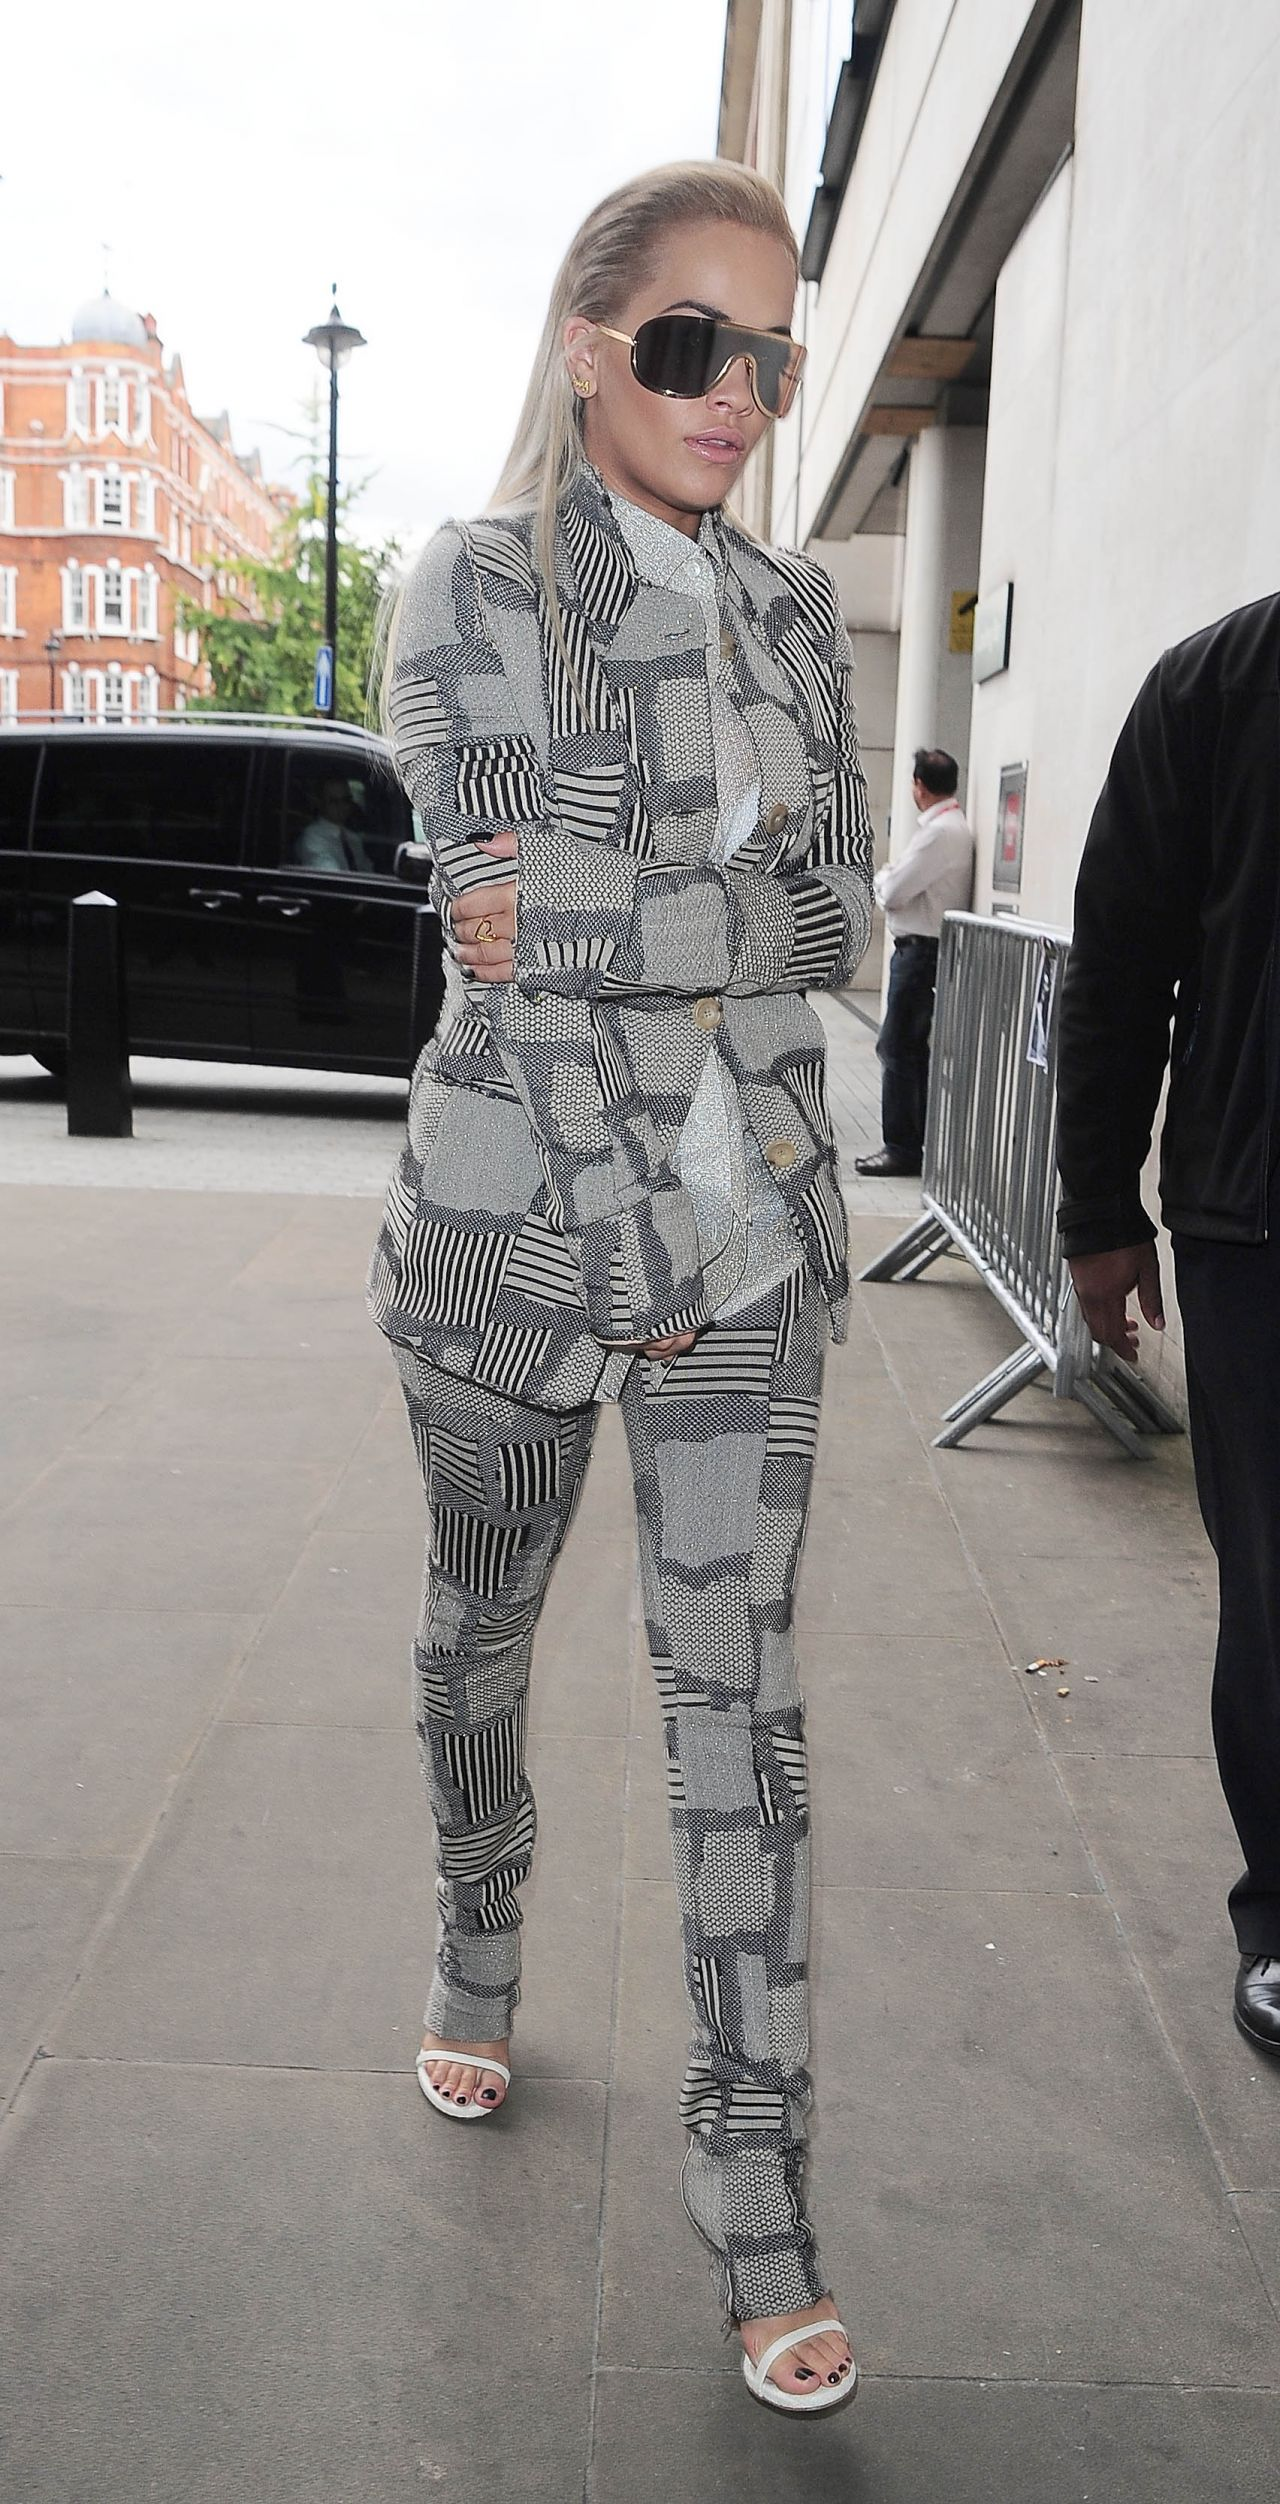 rita-ora-style-at-bbc-radio-1-studios-in-london-september-2015_6